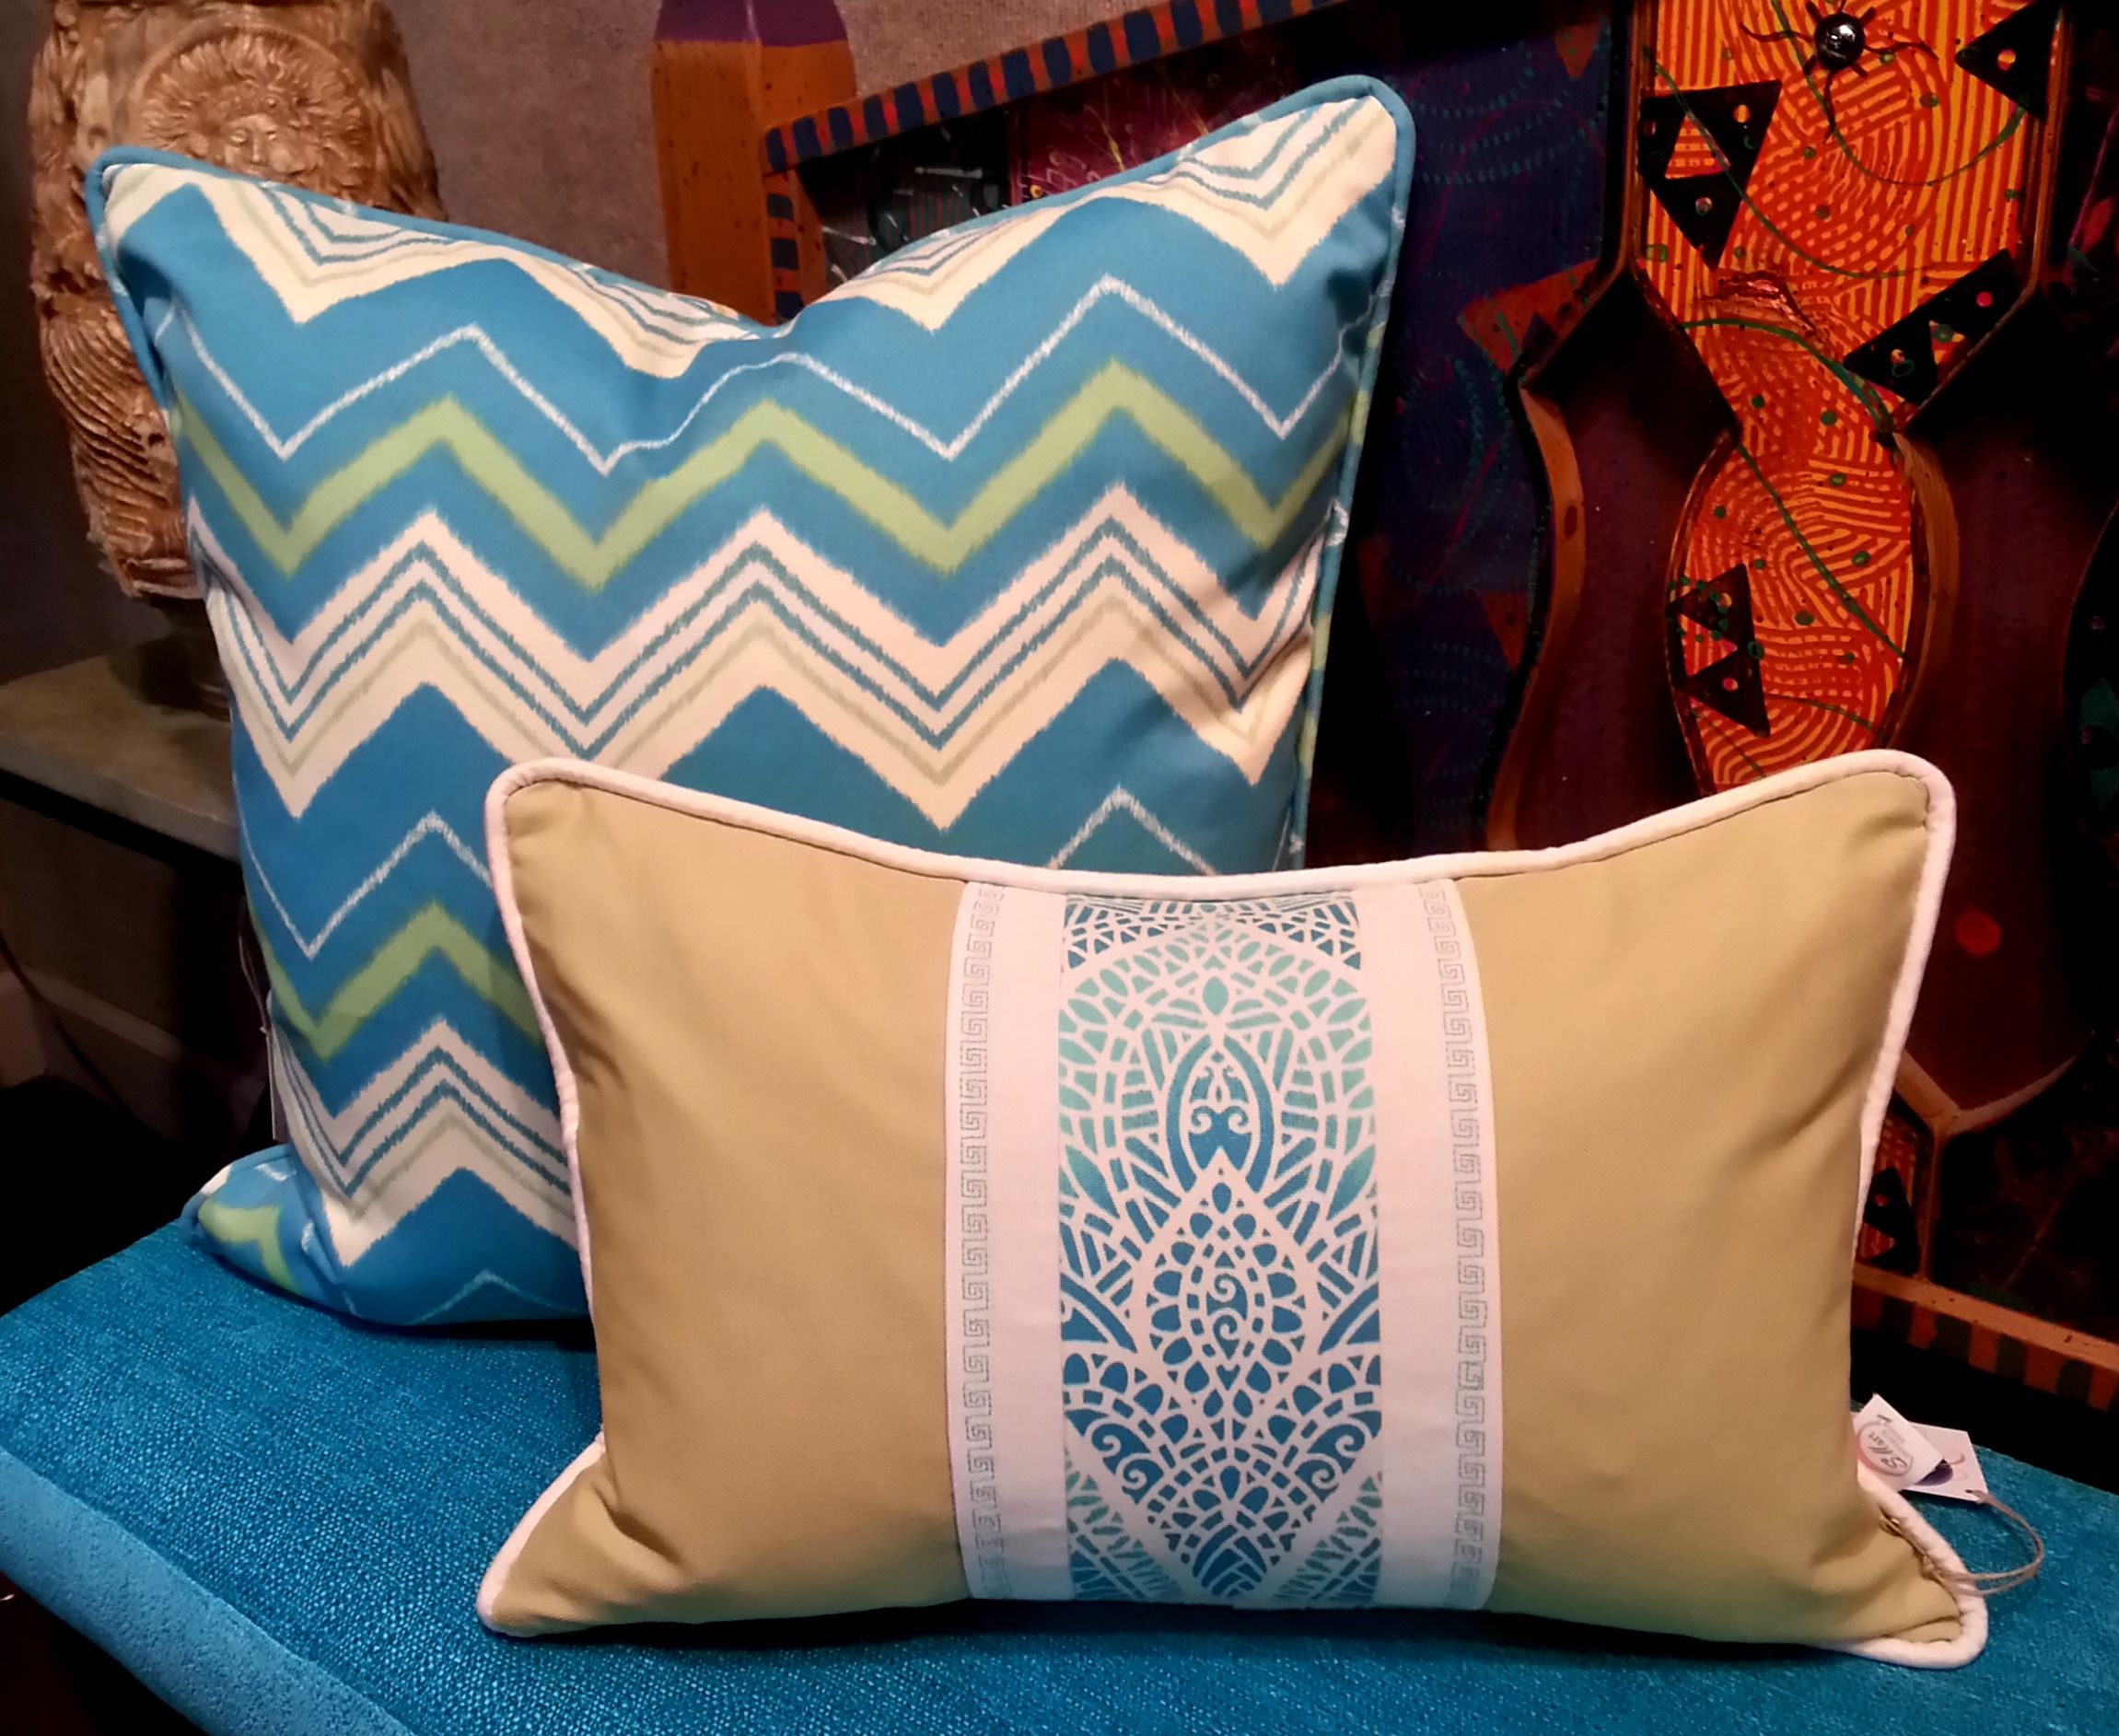 Custom indoor/ outdoor handmade pillows with premium faux down inserts - available at Eclispe at Blue Moon Artisan Boutique